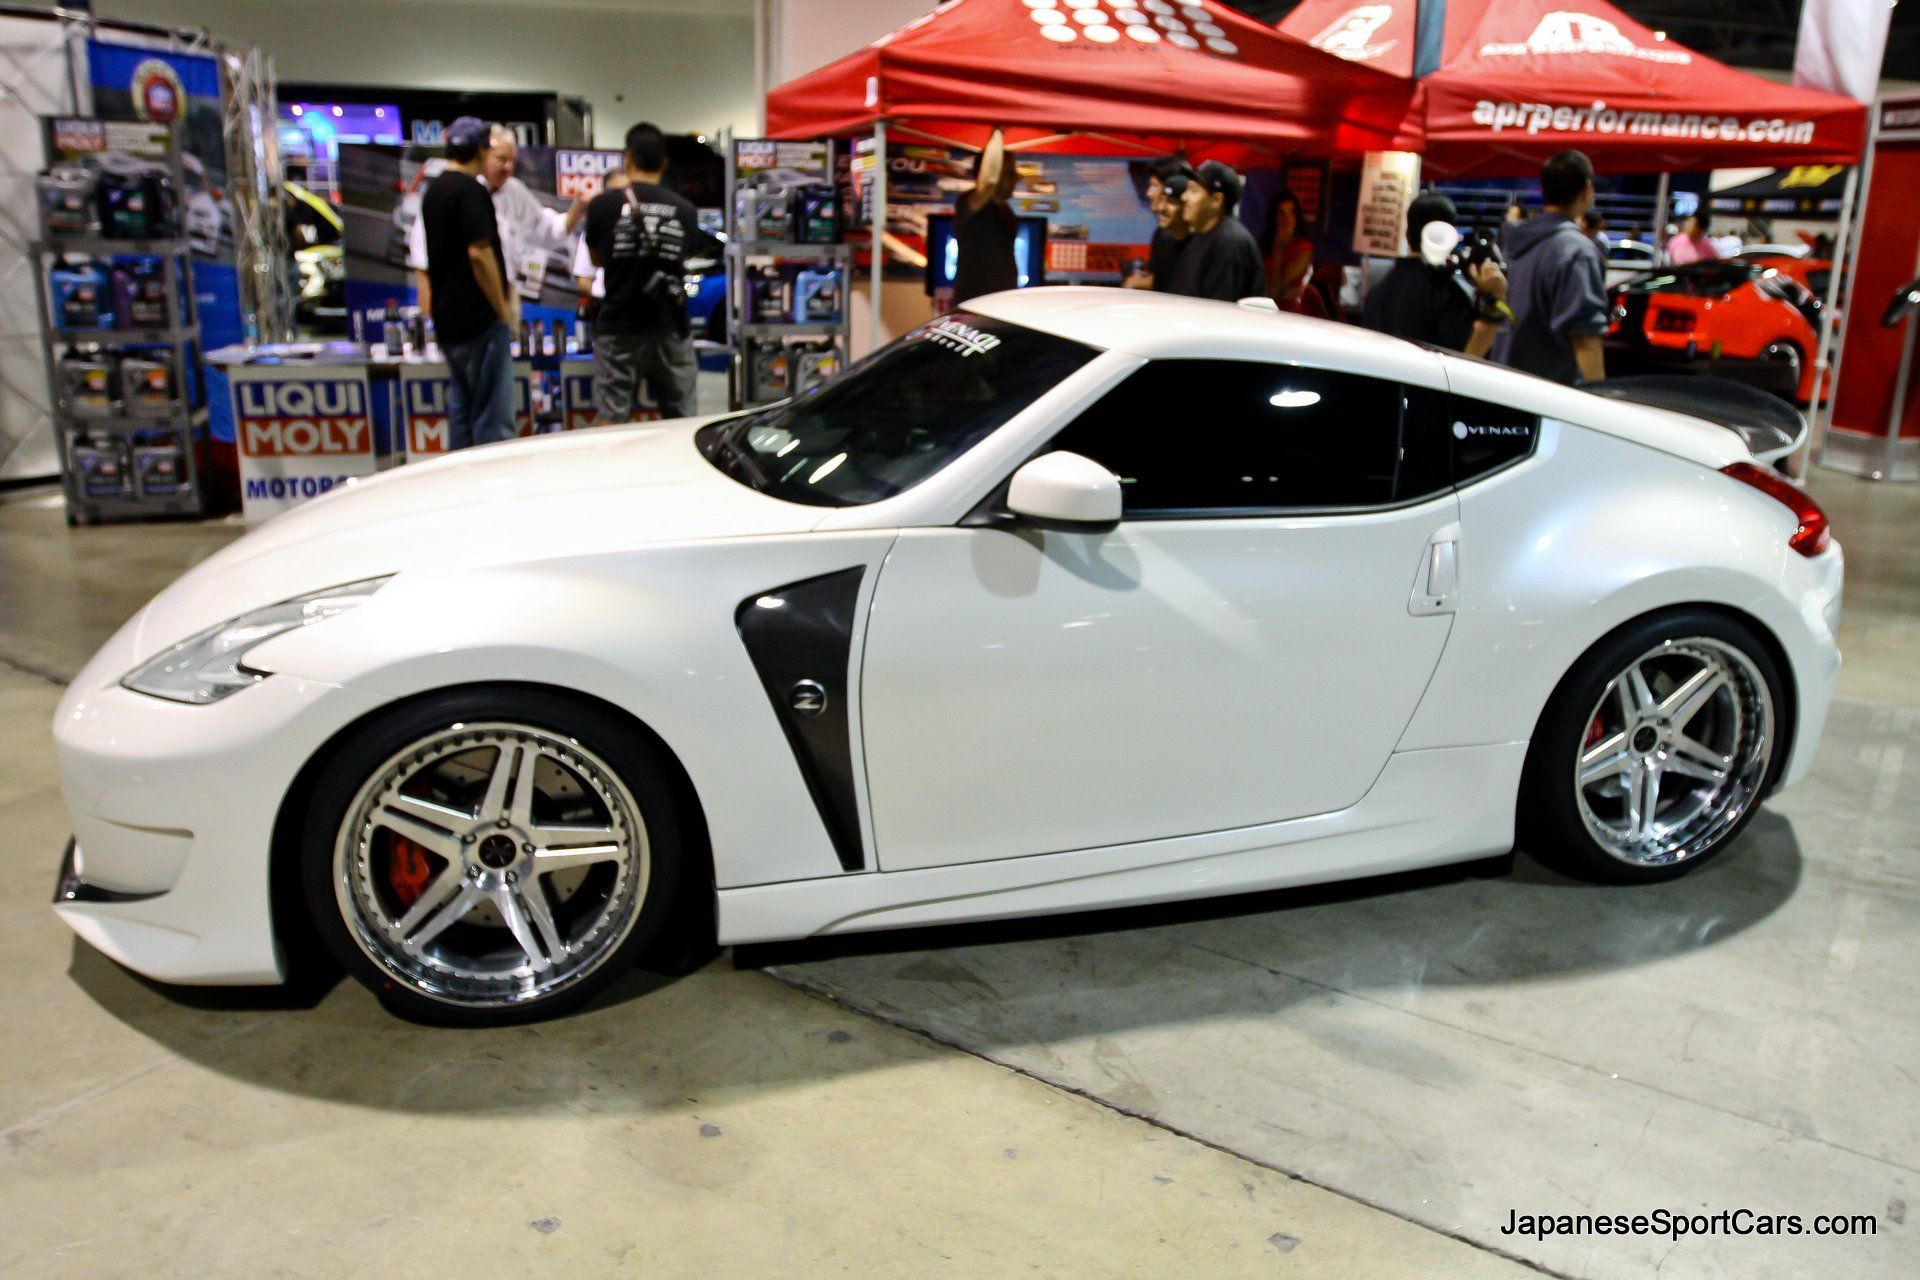 Delightful Picture Of Custom Nissan 370Z With Amuse Vestito Body Kit And Venaci Wheels